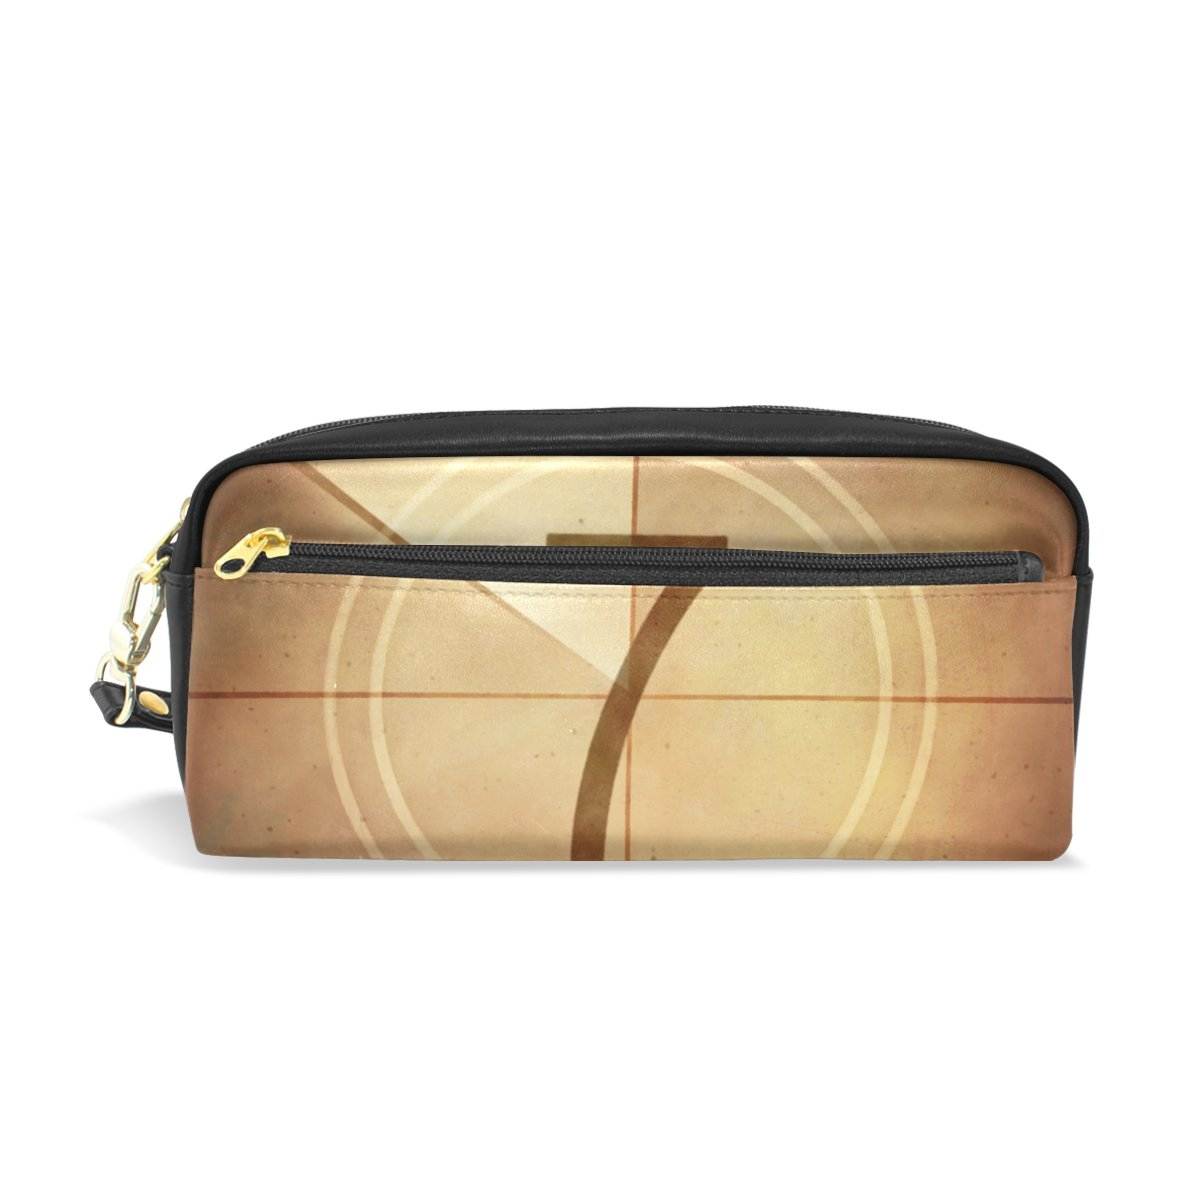 LORVIES Countdown Seven On The Old Movie Screen Portable PU Leather Pencil Case School Pen Bags Stationary Pouch Case Large Capacity Makeup Cosmetic Bag